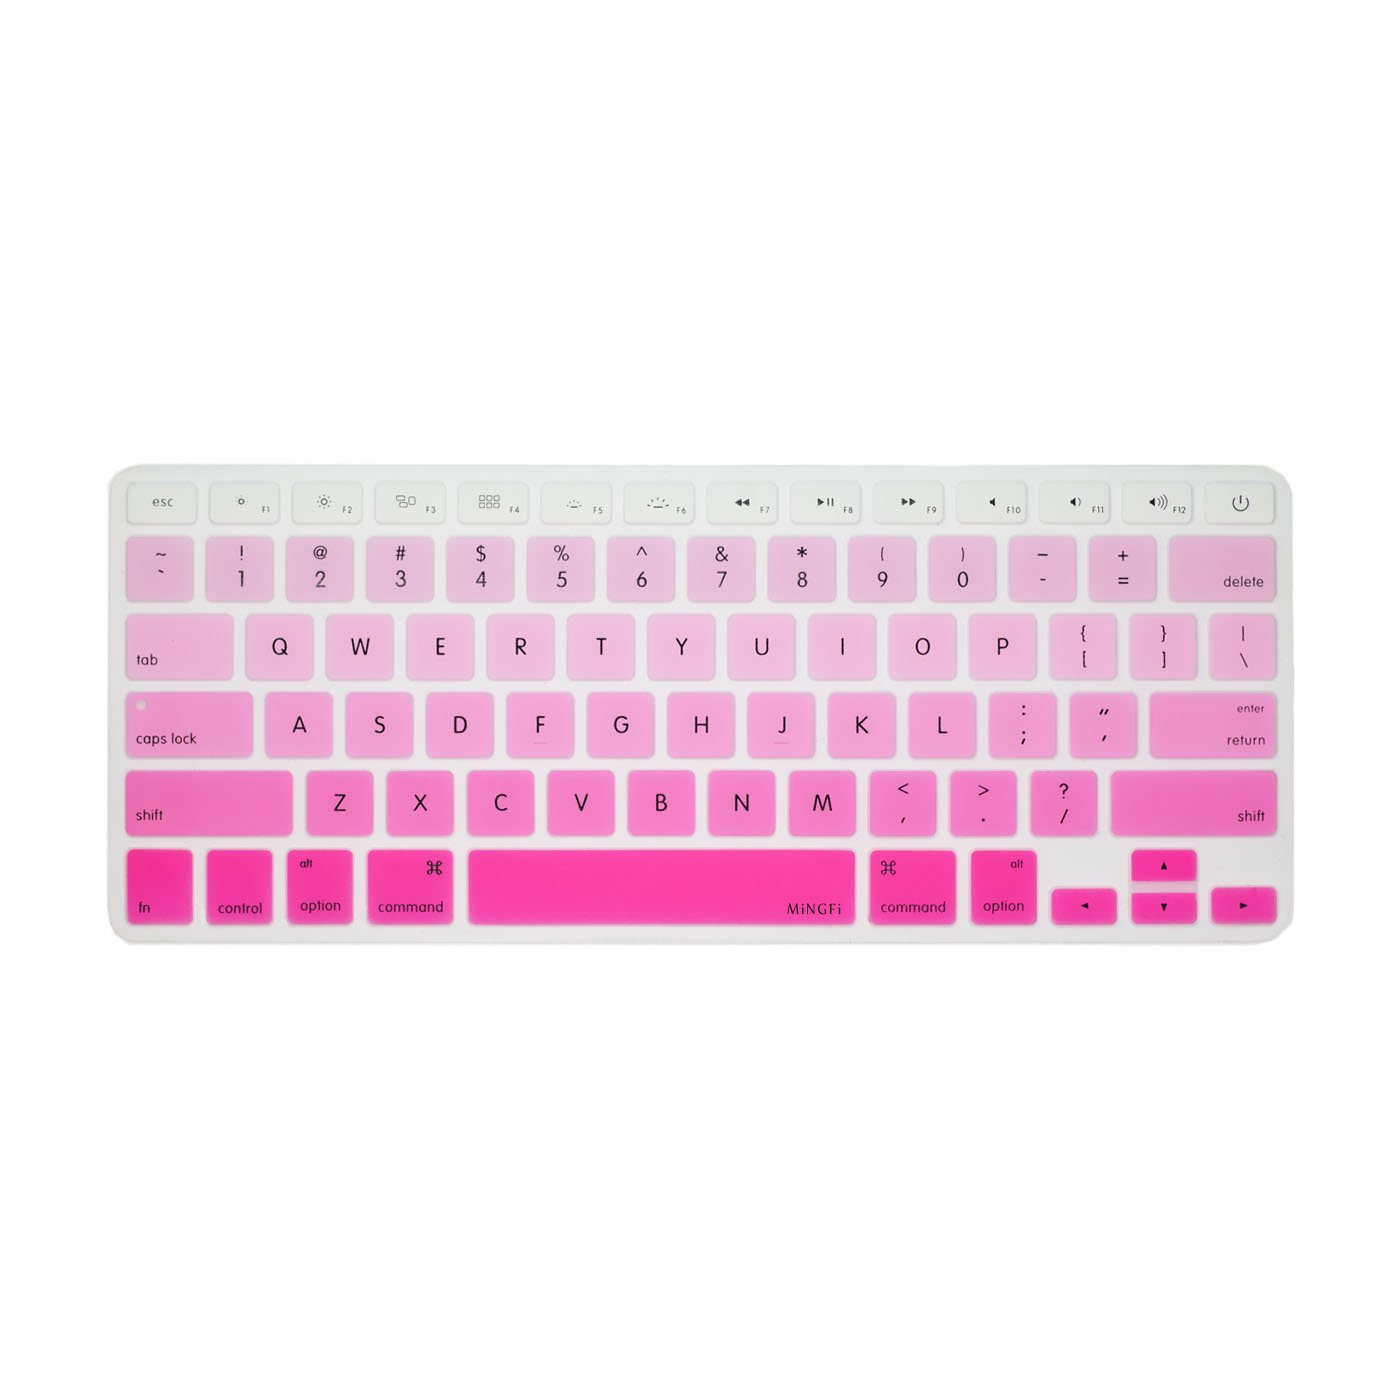 MiNGFi Anglais English Clavier Coque de Protection / Couverture pour MacBook Pro 13' 15' 17' et Air 13' US/ANSI Keyboard Disposition Silicone Skin - White to Pink PC06US07-03